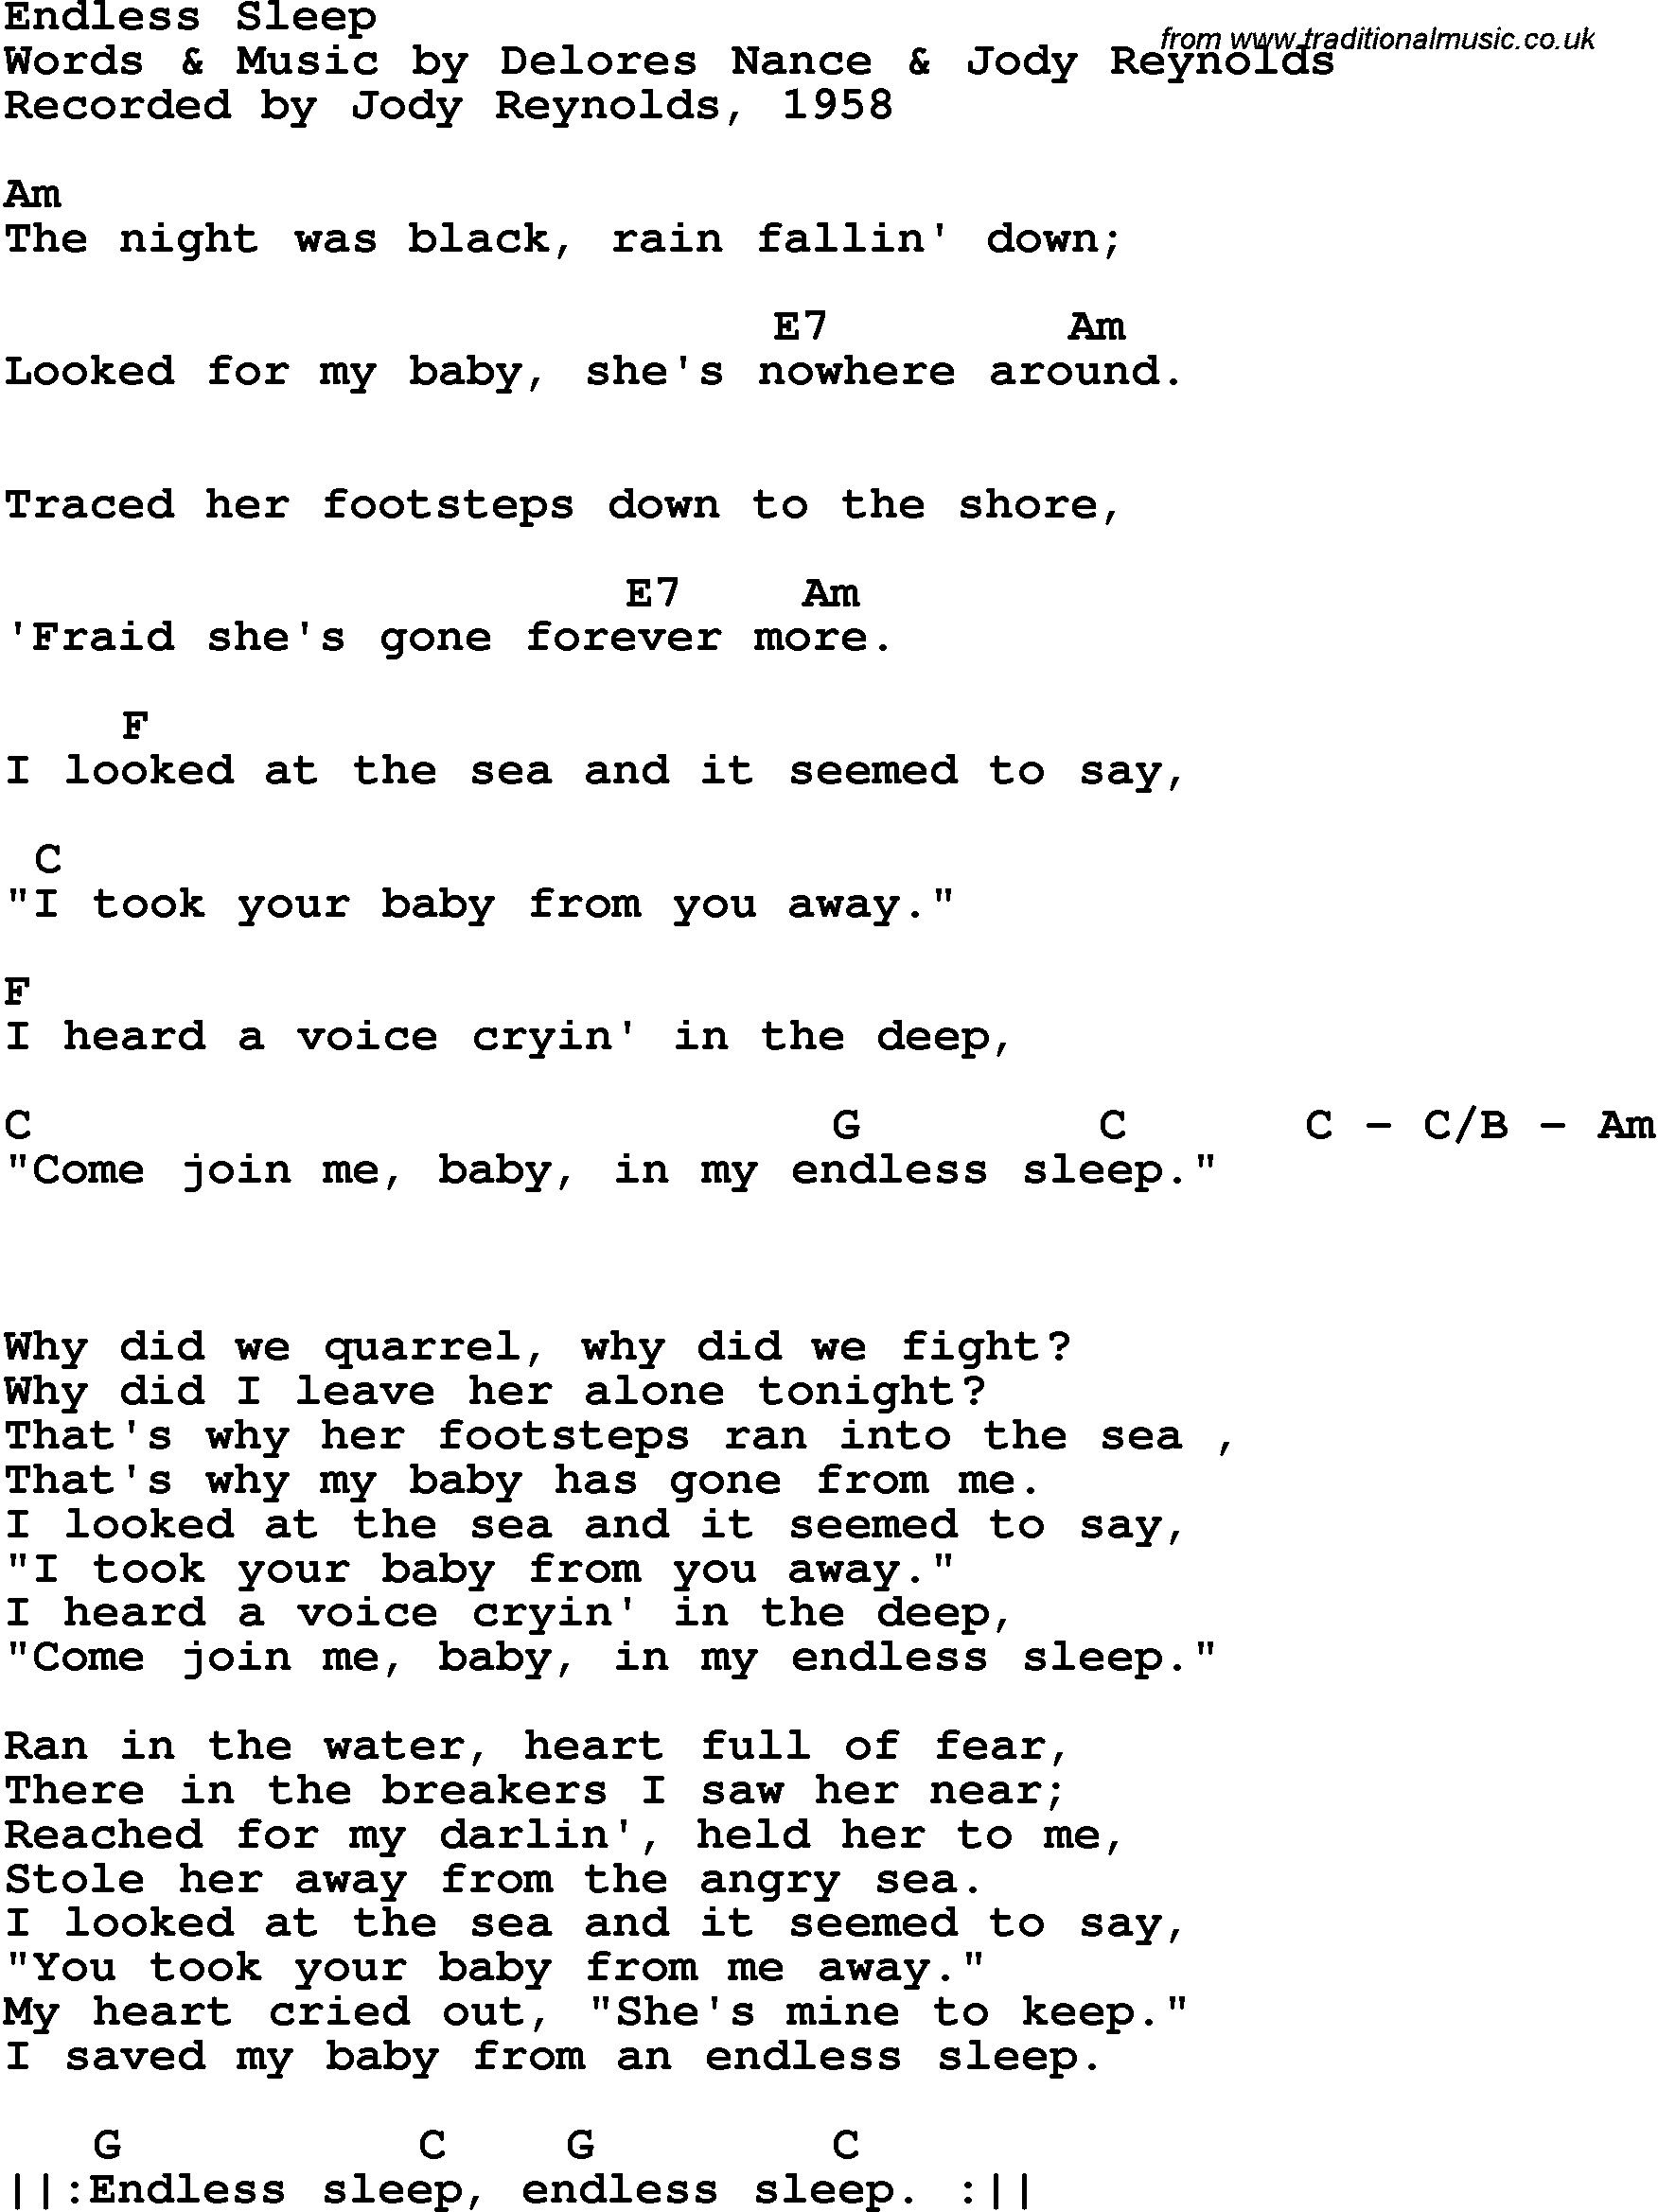 Song lyrics with guitar chords for endless sleep jody reynolds 1958 song lyrics with guitar chords for endless sleep jody reynolds 1958 hexwebz Choice Image